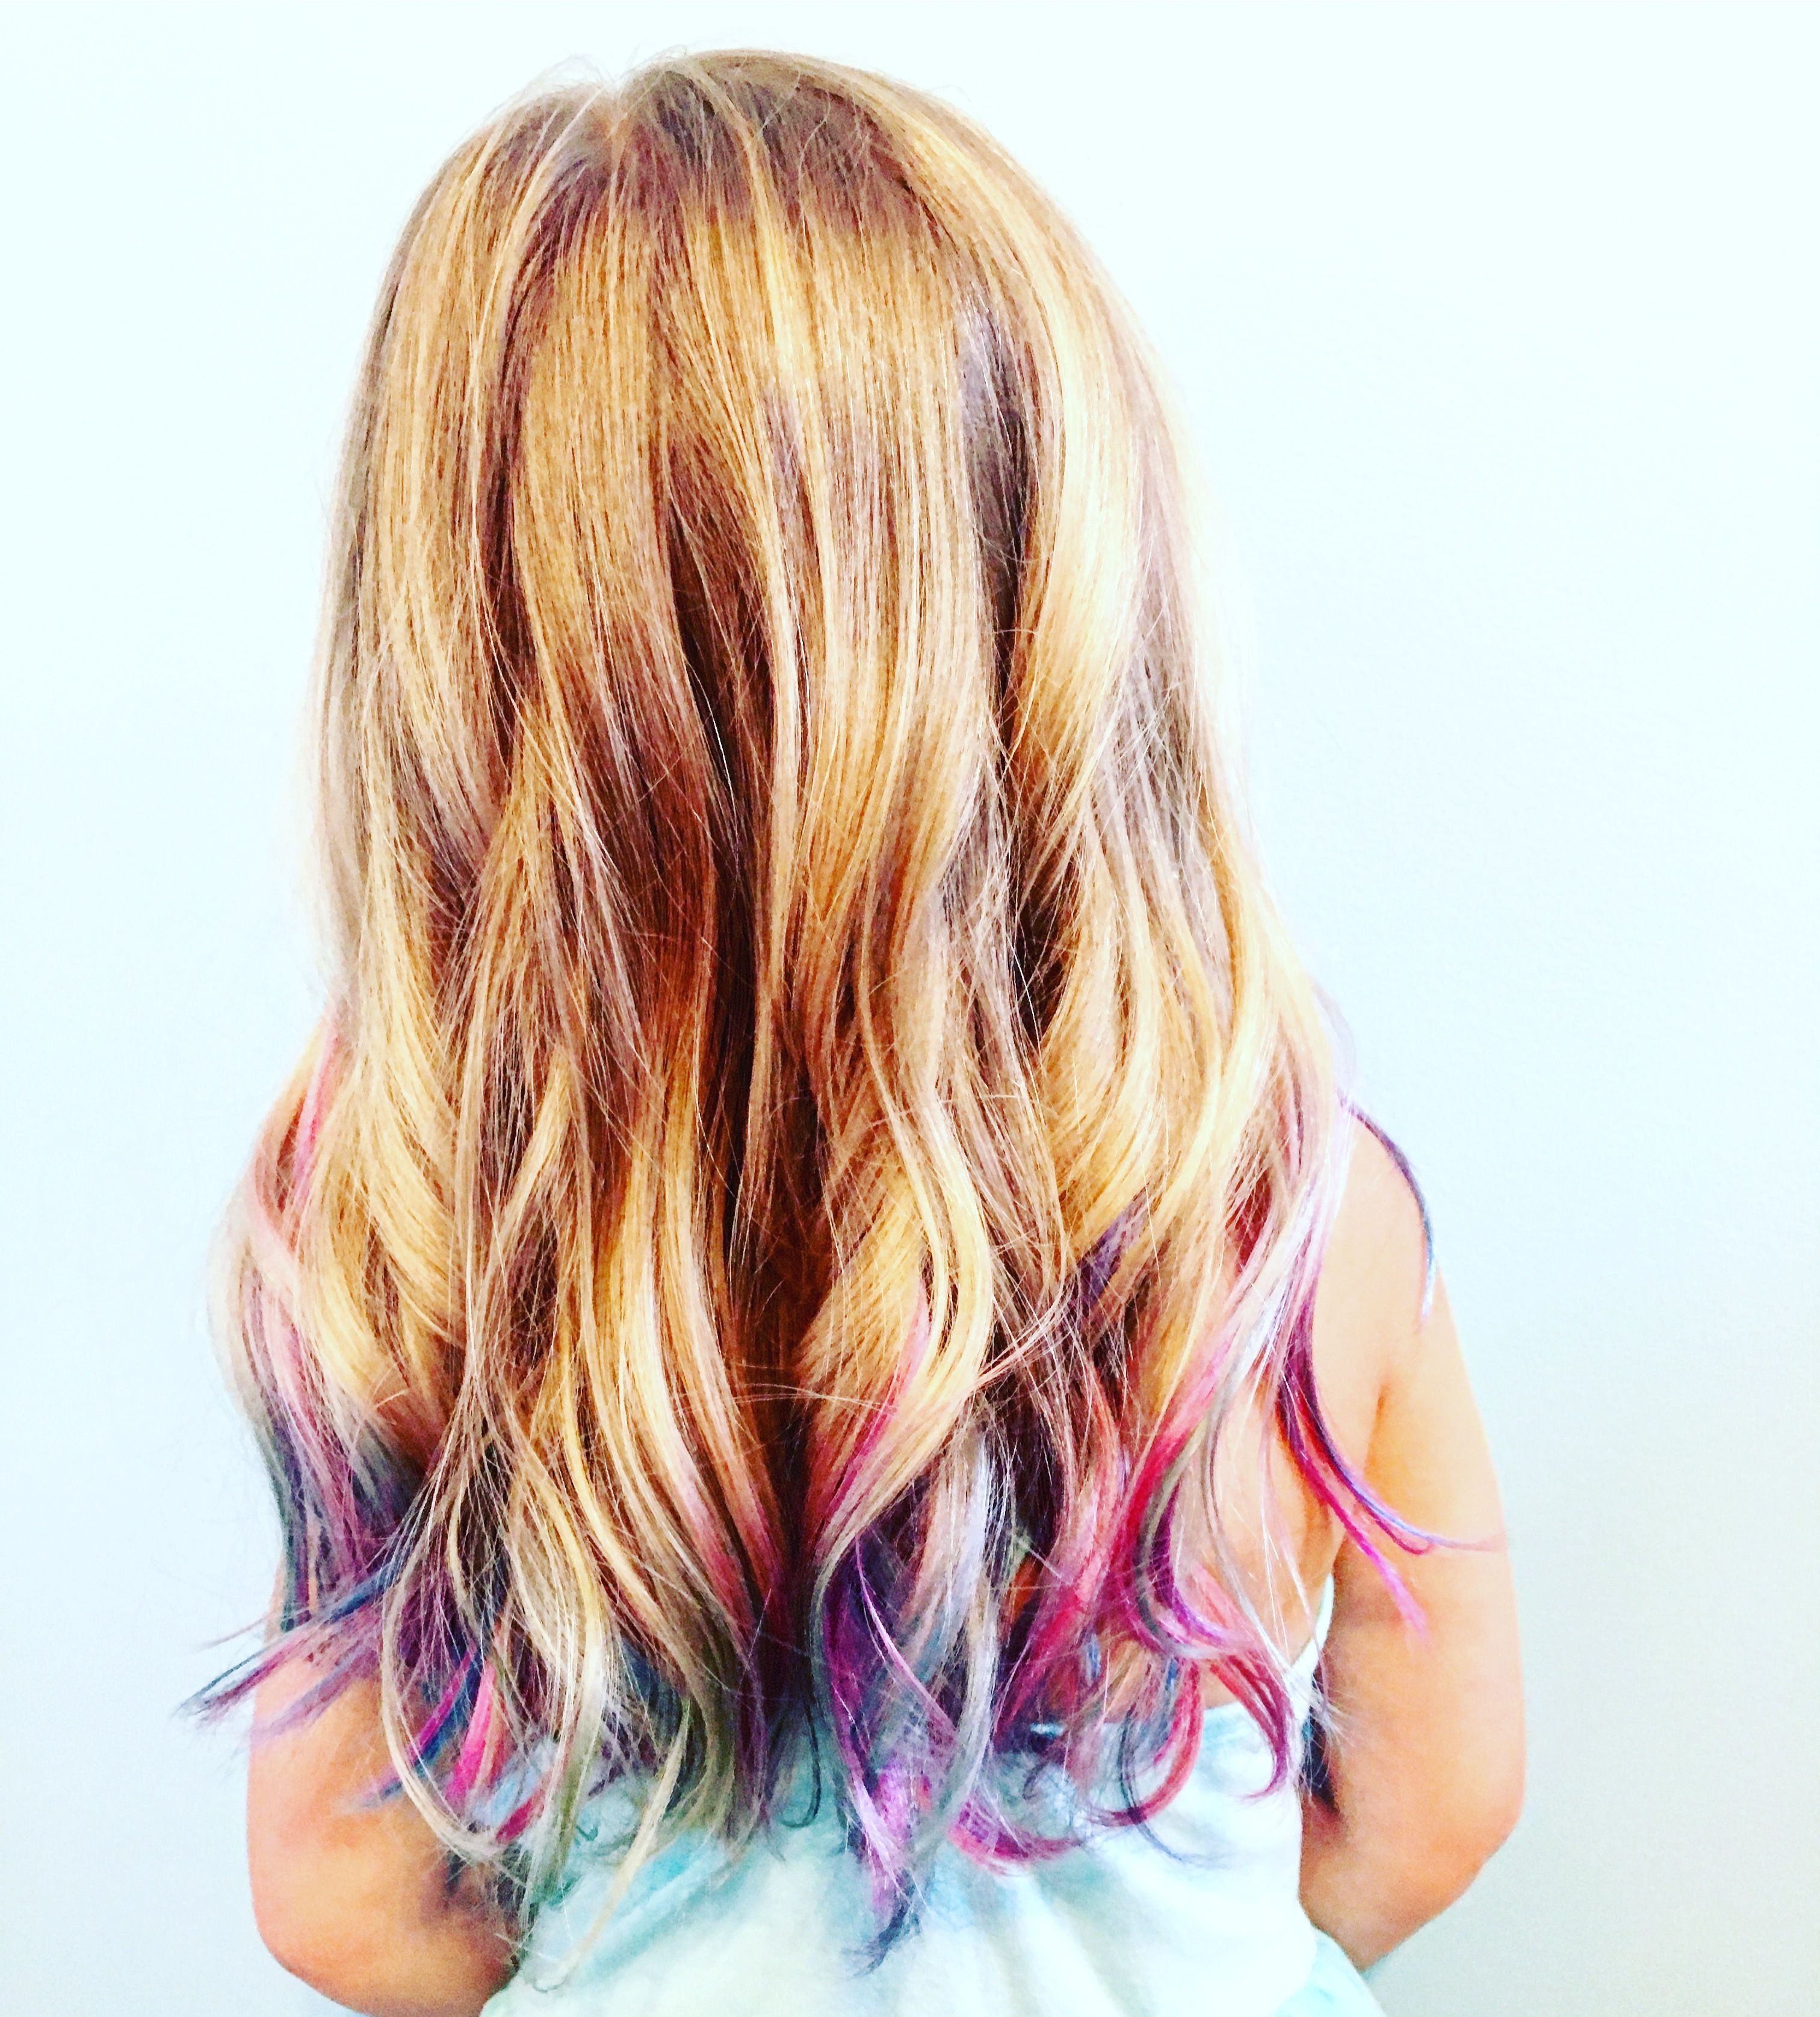 Little Girls Colorful Mermaid Hair Colored Hair Tips Girl Hair Colors Mermaid Hair Color